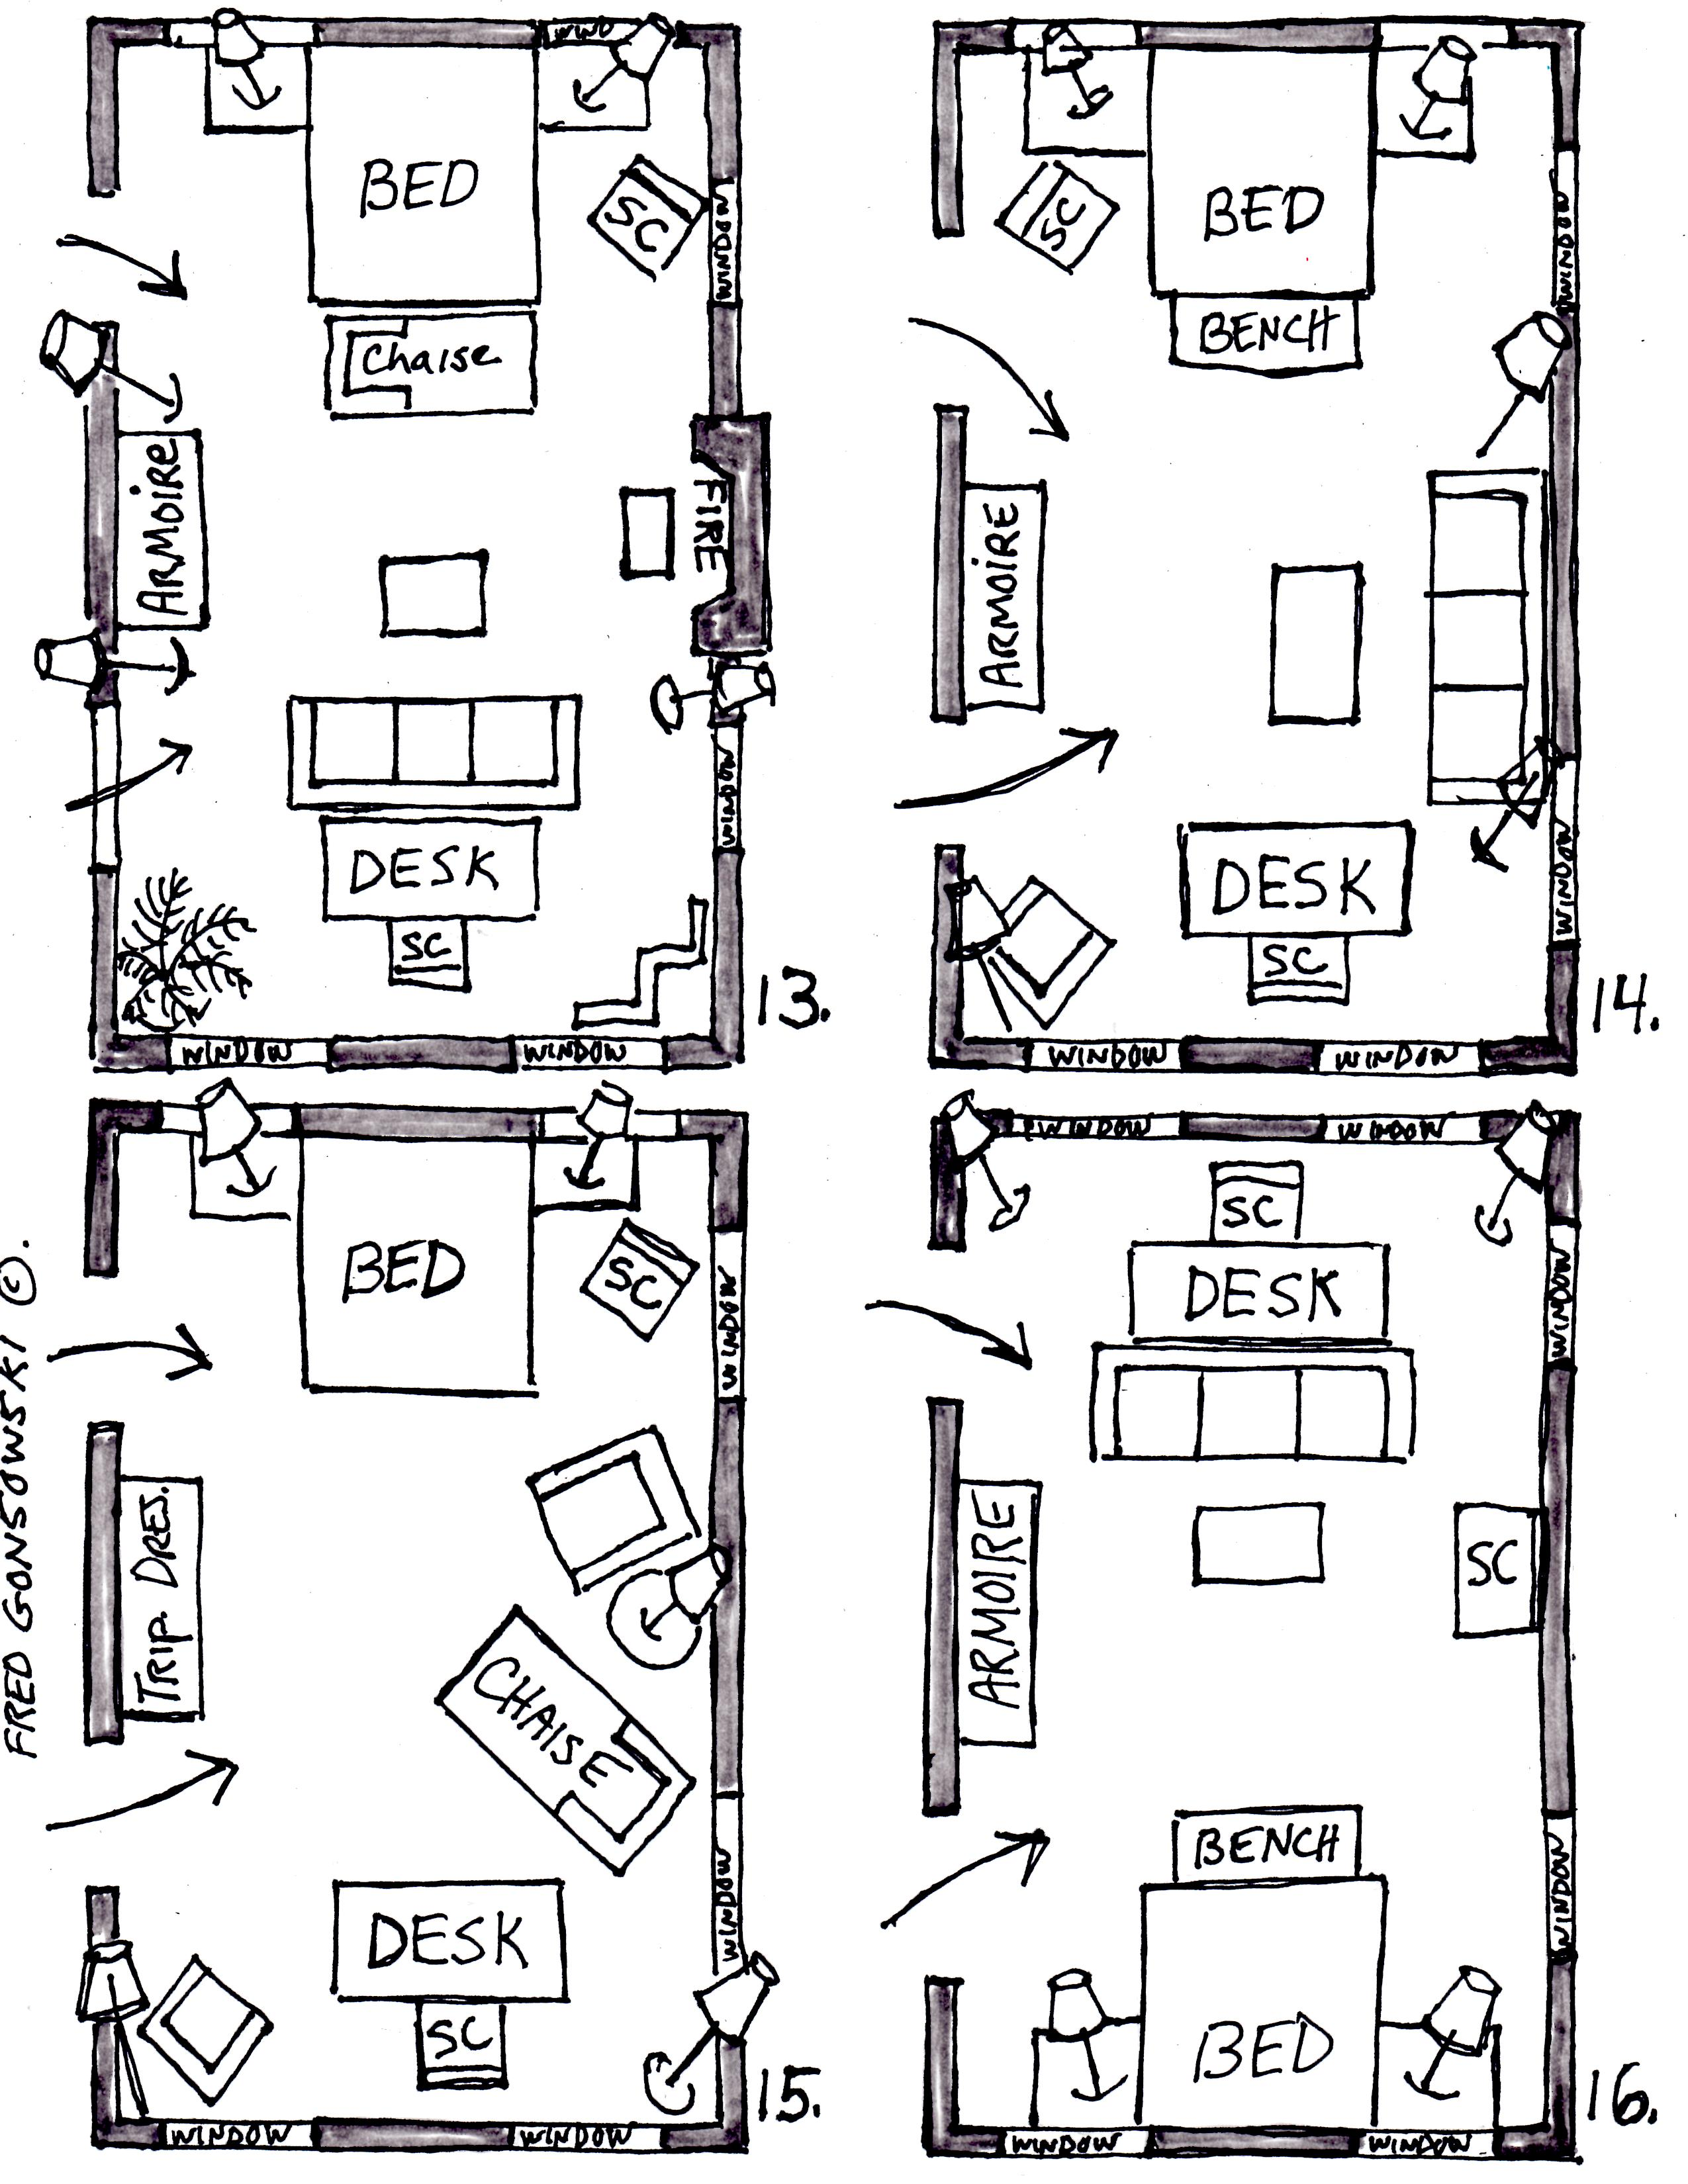 Arranging Furniture In A 15 Foot Wide By 25 Foot Long